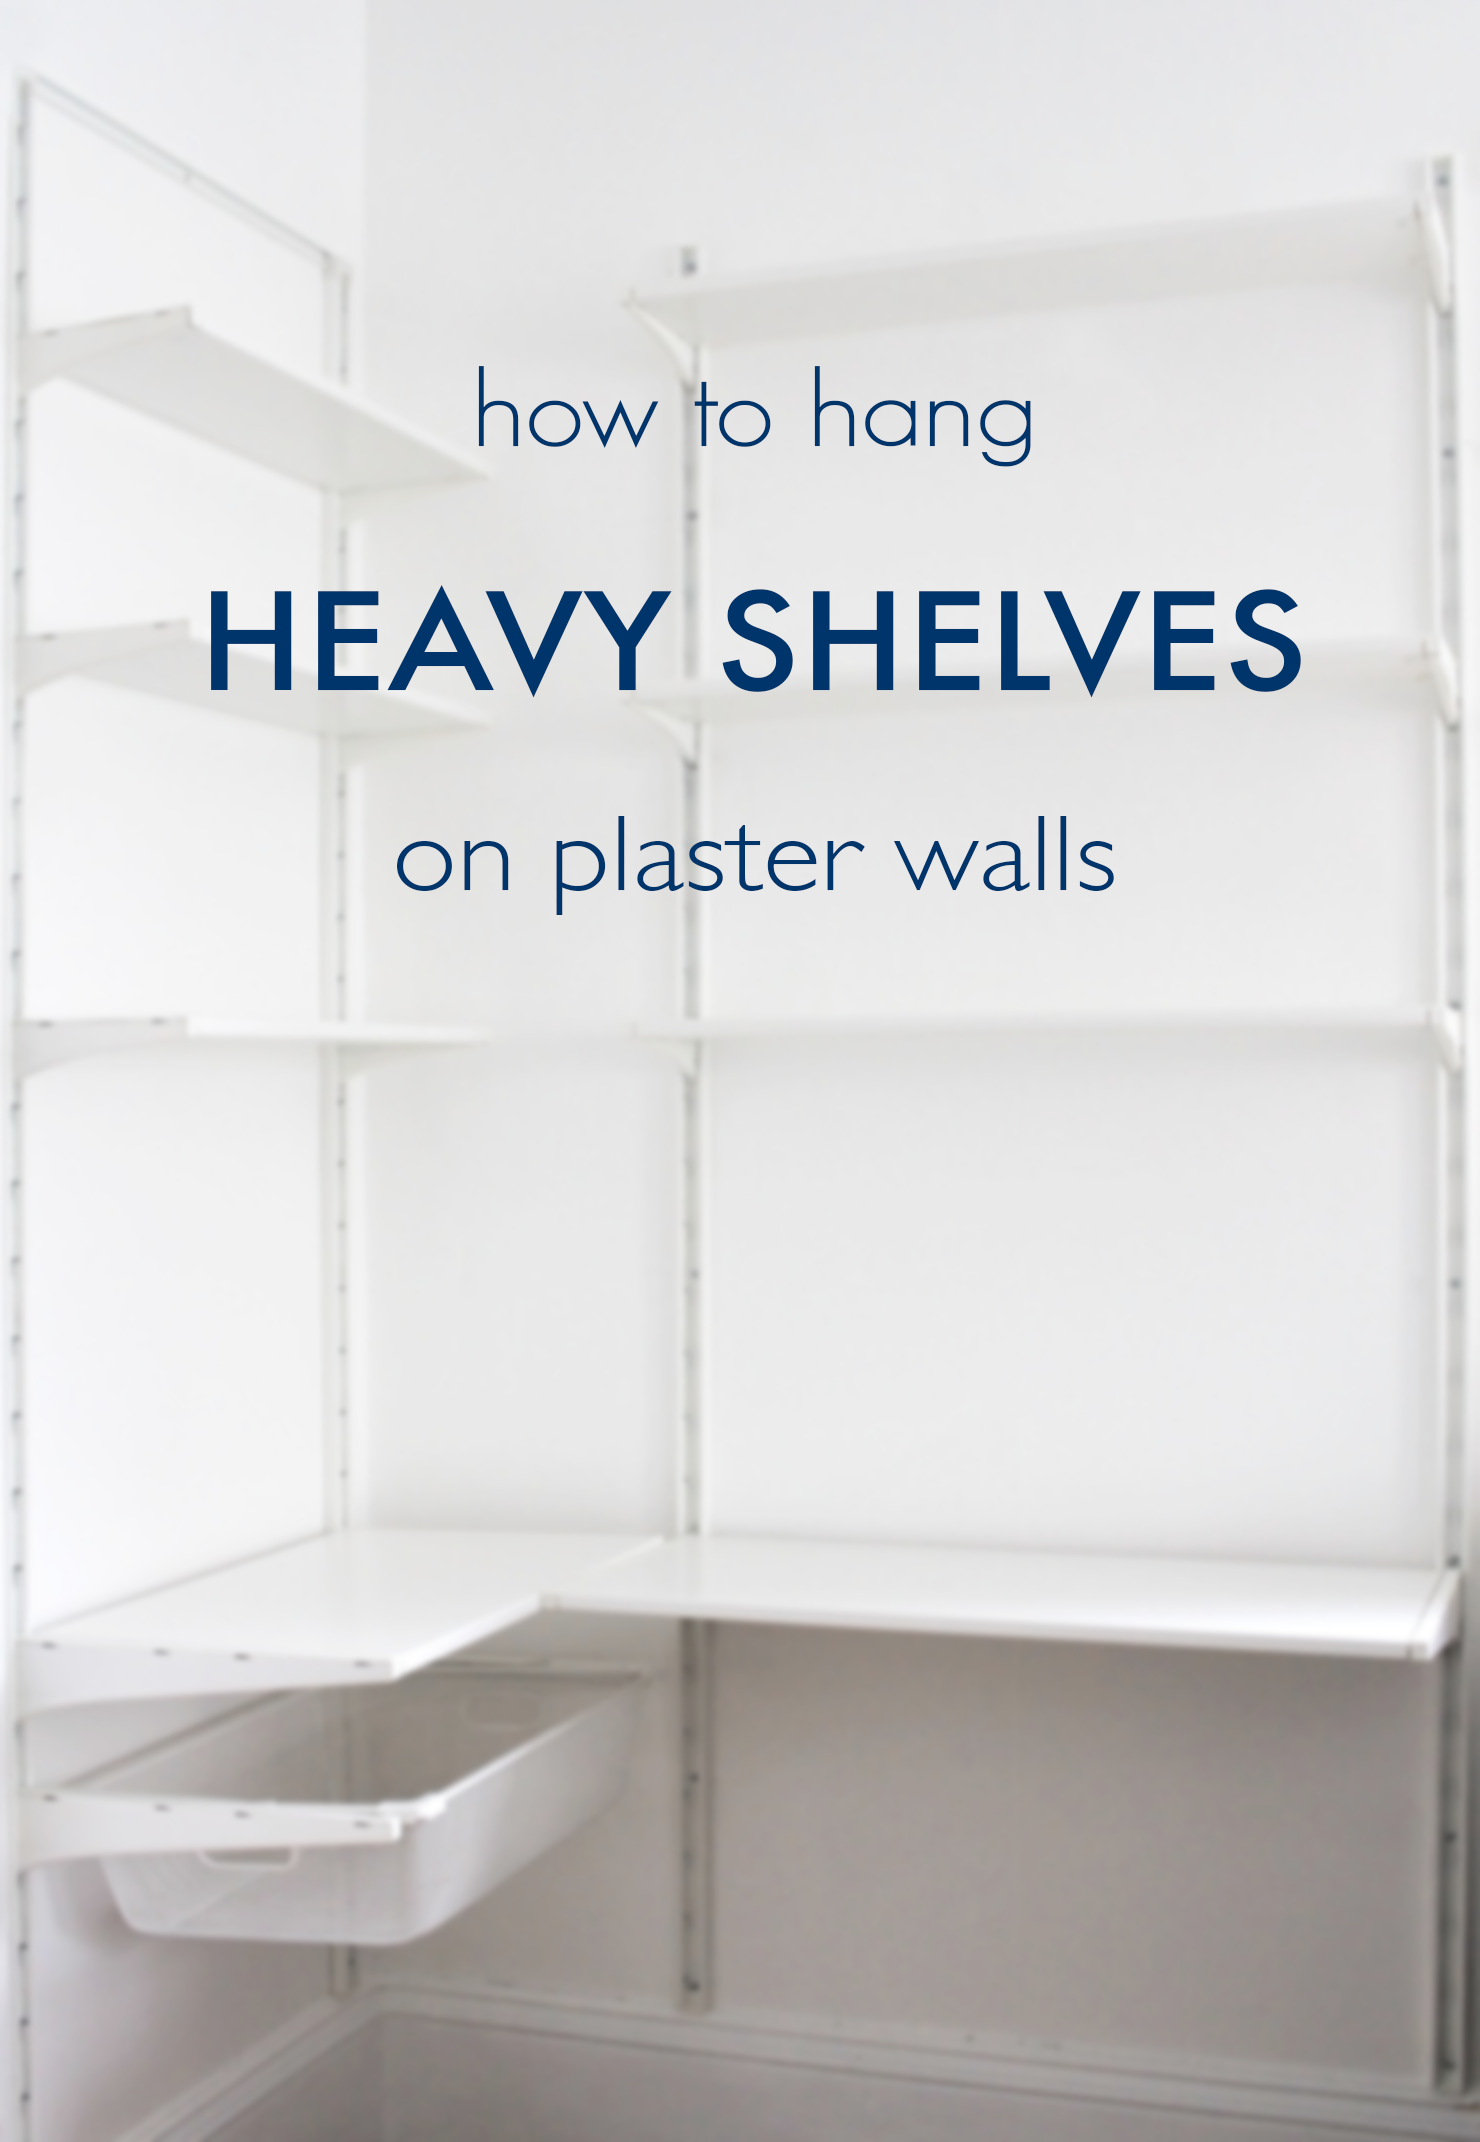 How To Hang Heavy Shelves On Horsehair Plaster Walls Idle